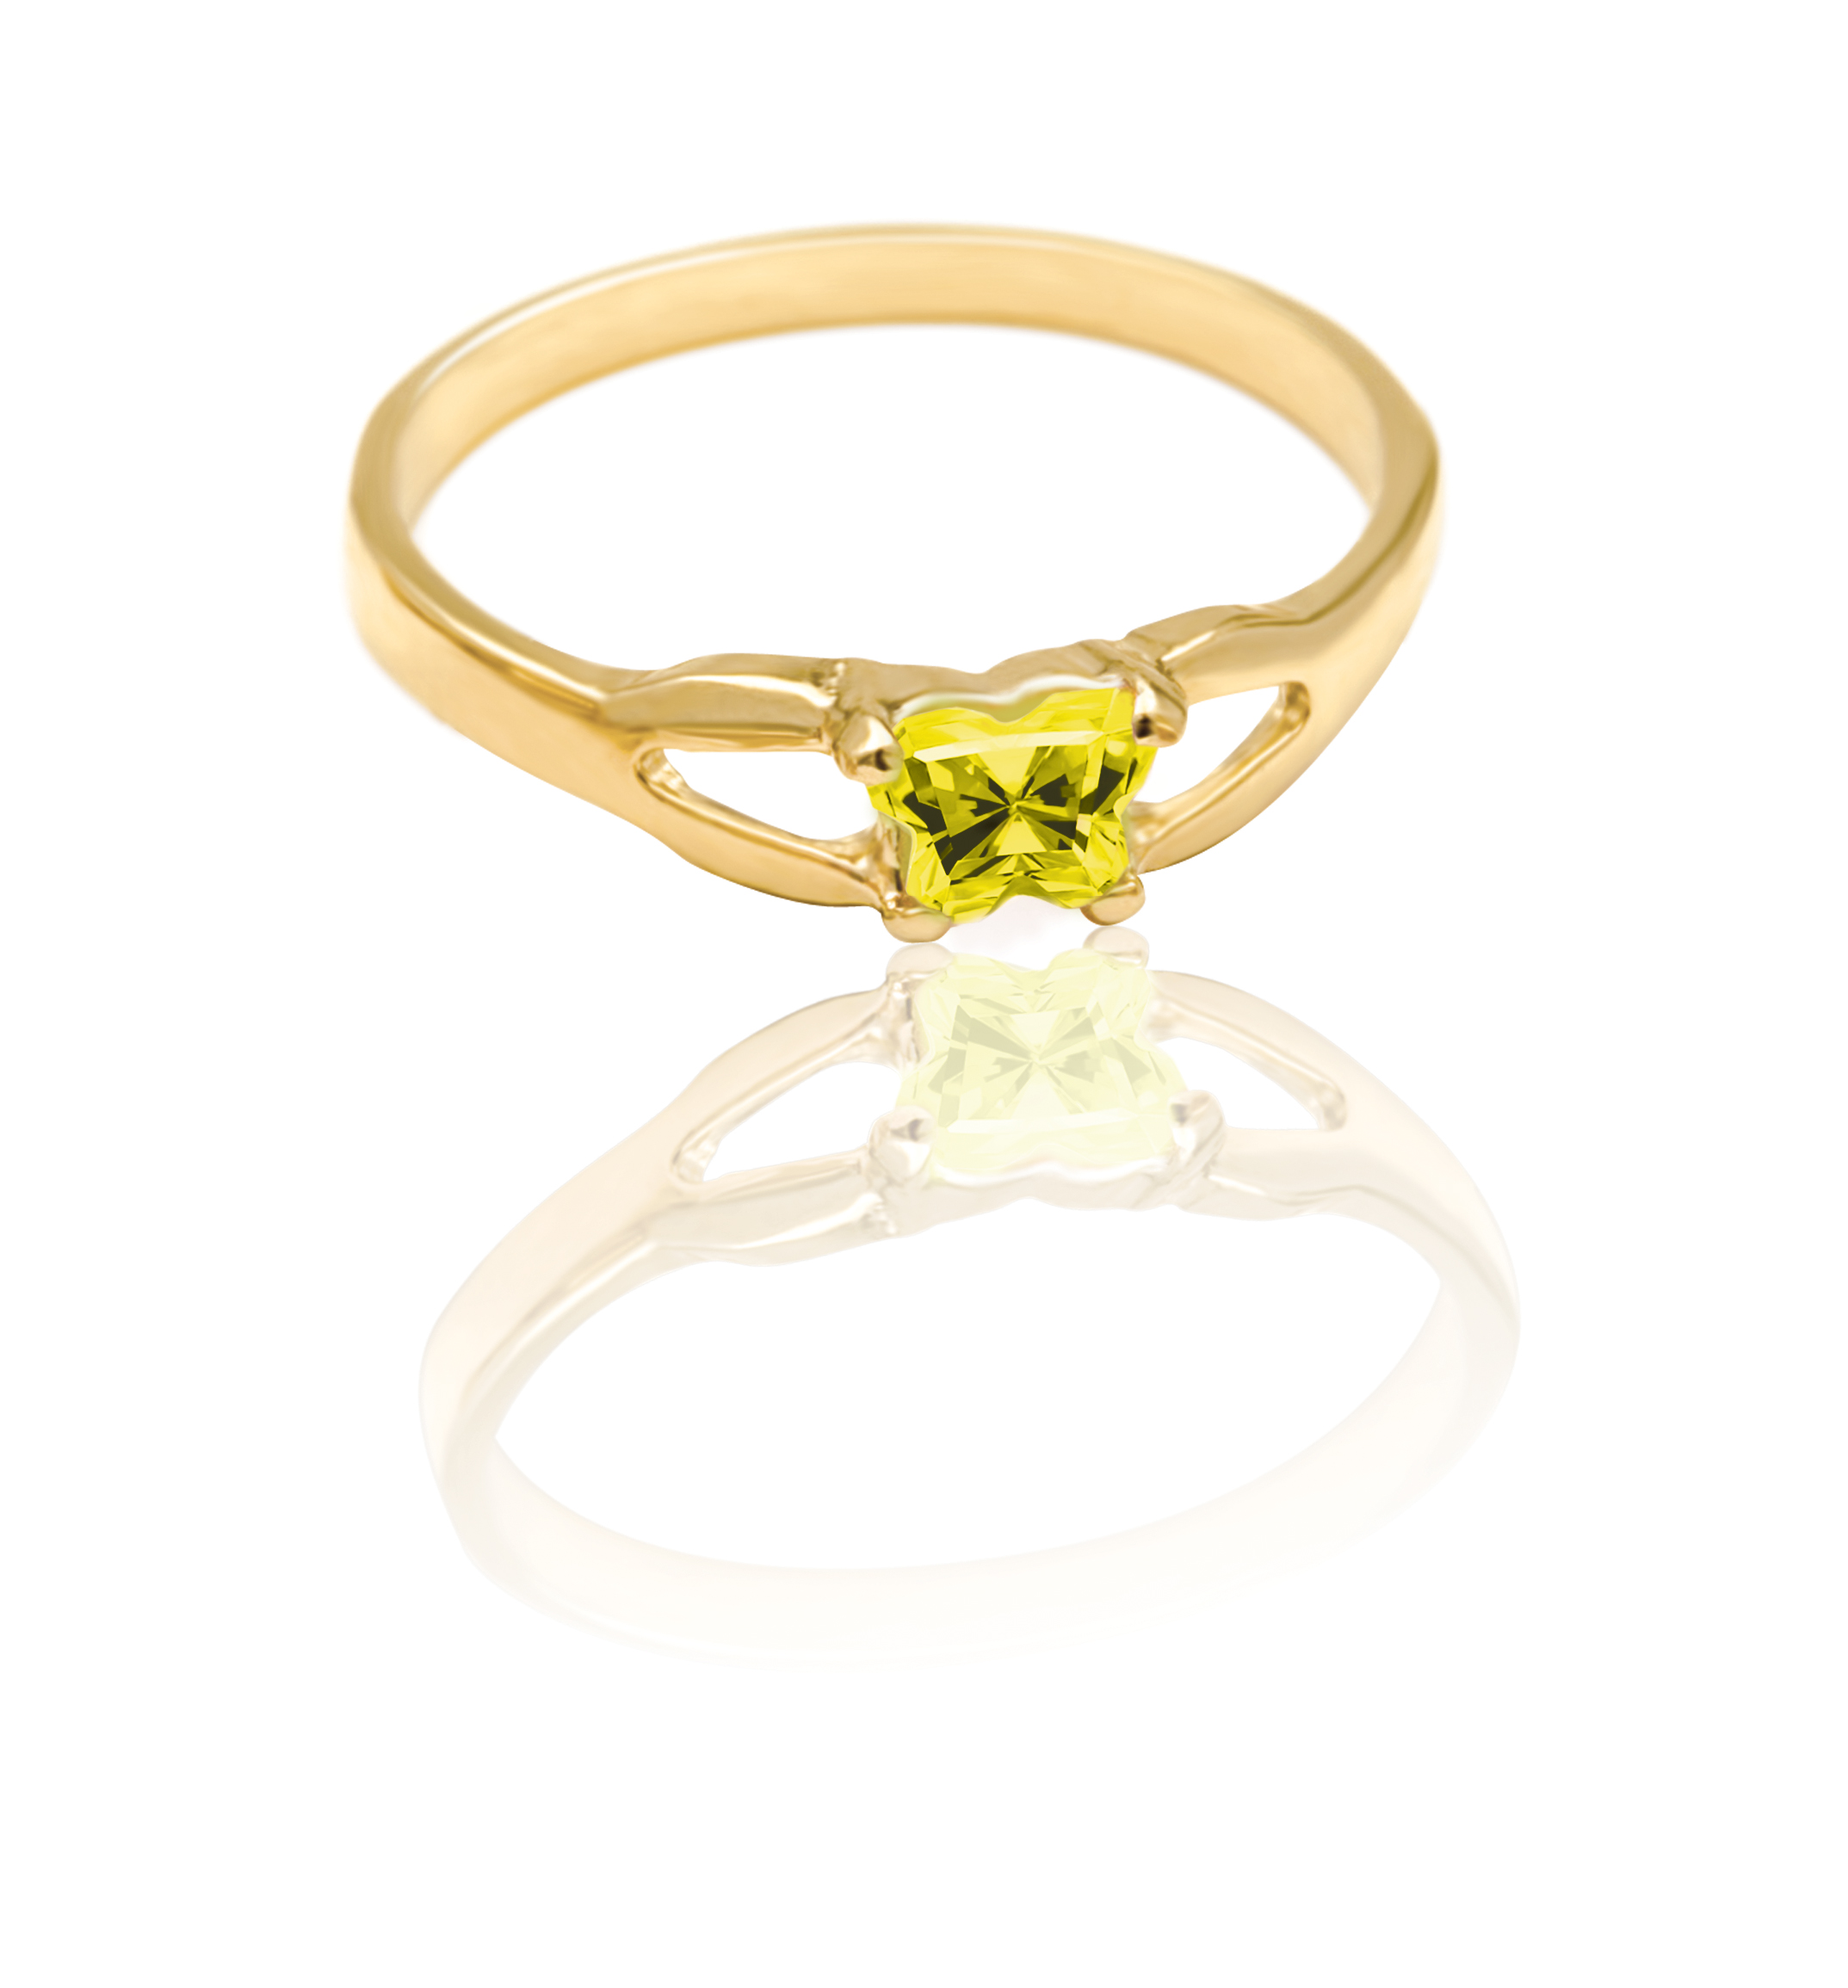 ring for child - 10K yellow Gold & Yellow cubic zirconia (month of November)*